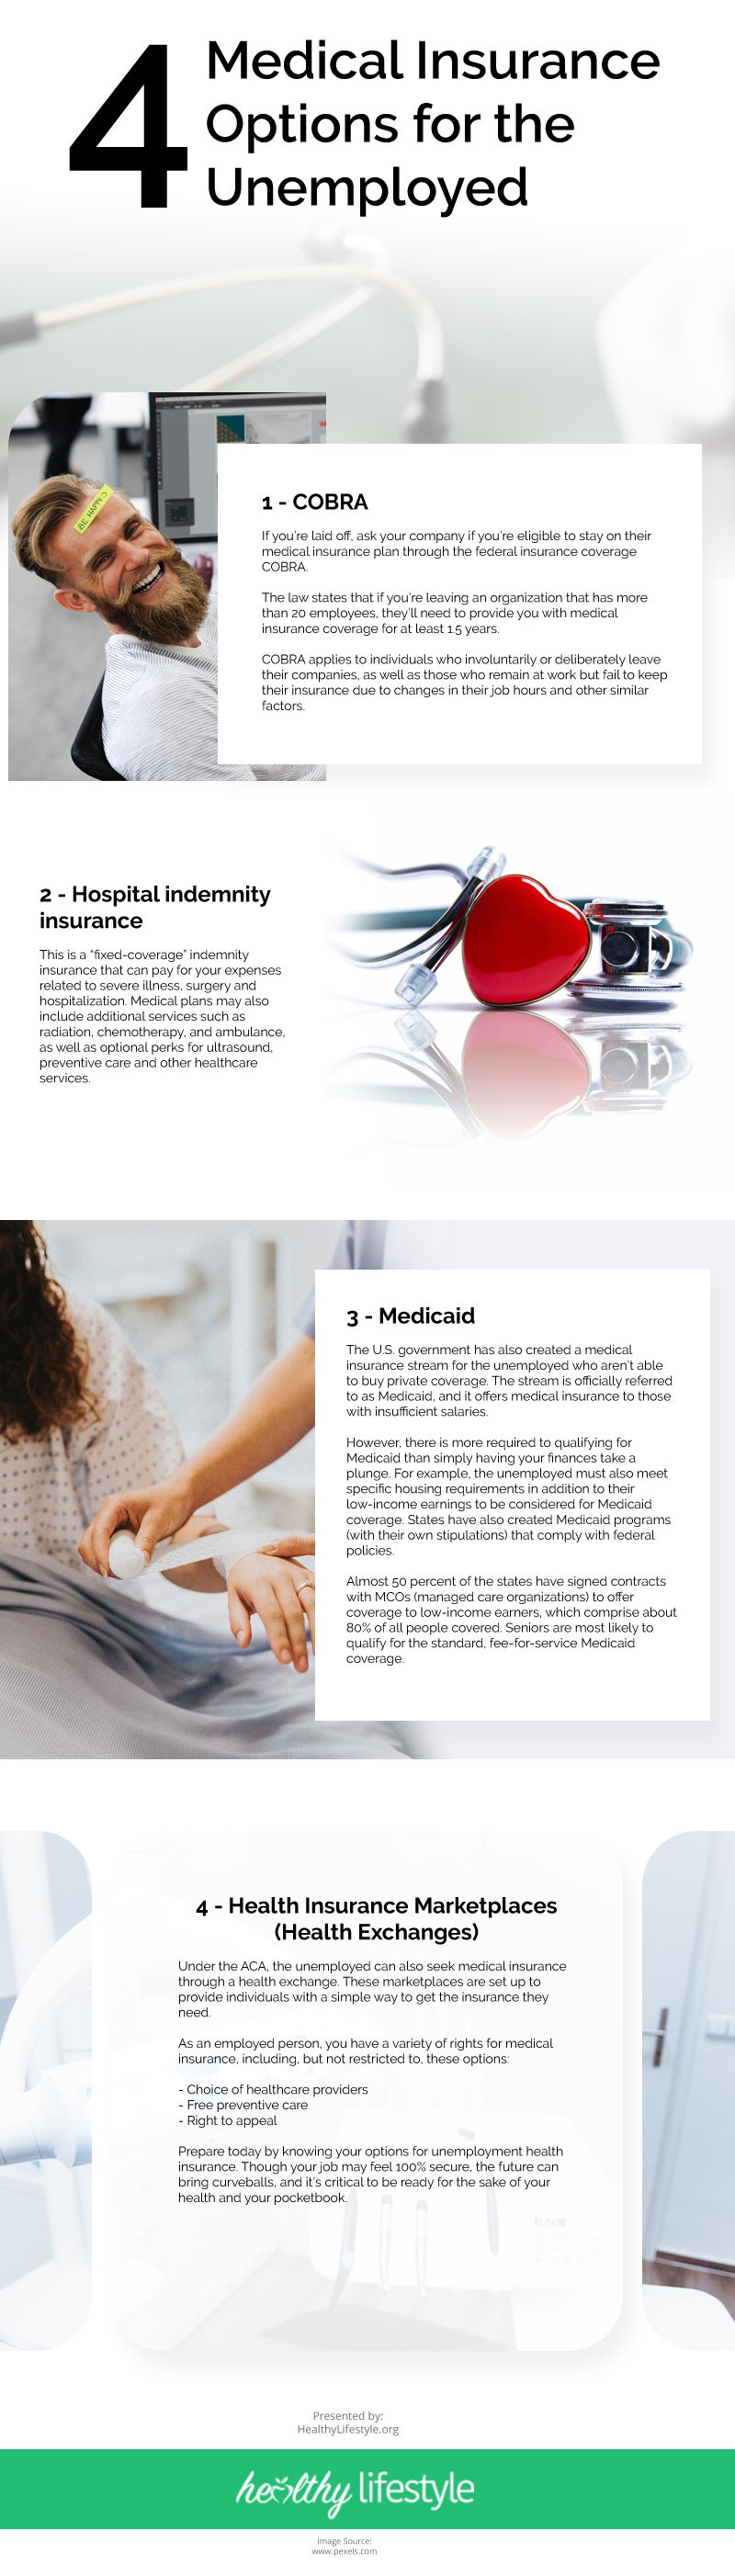 4 Medical Insurance Options for the Unemployed Infographic